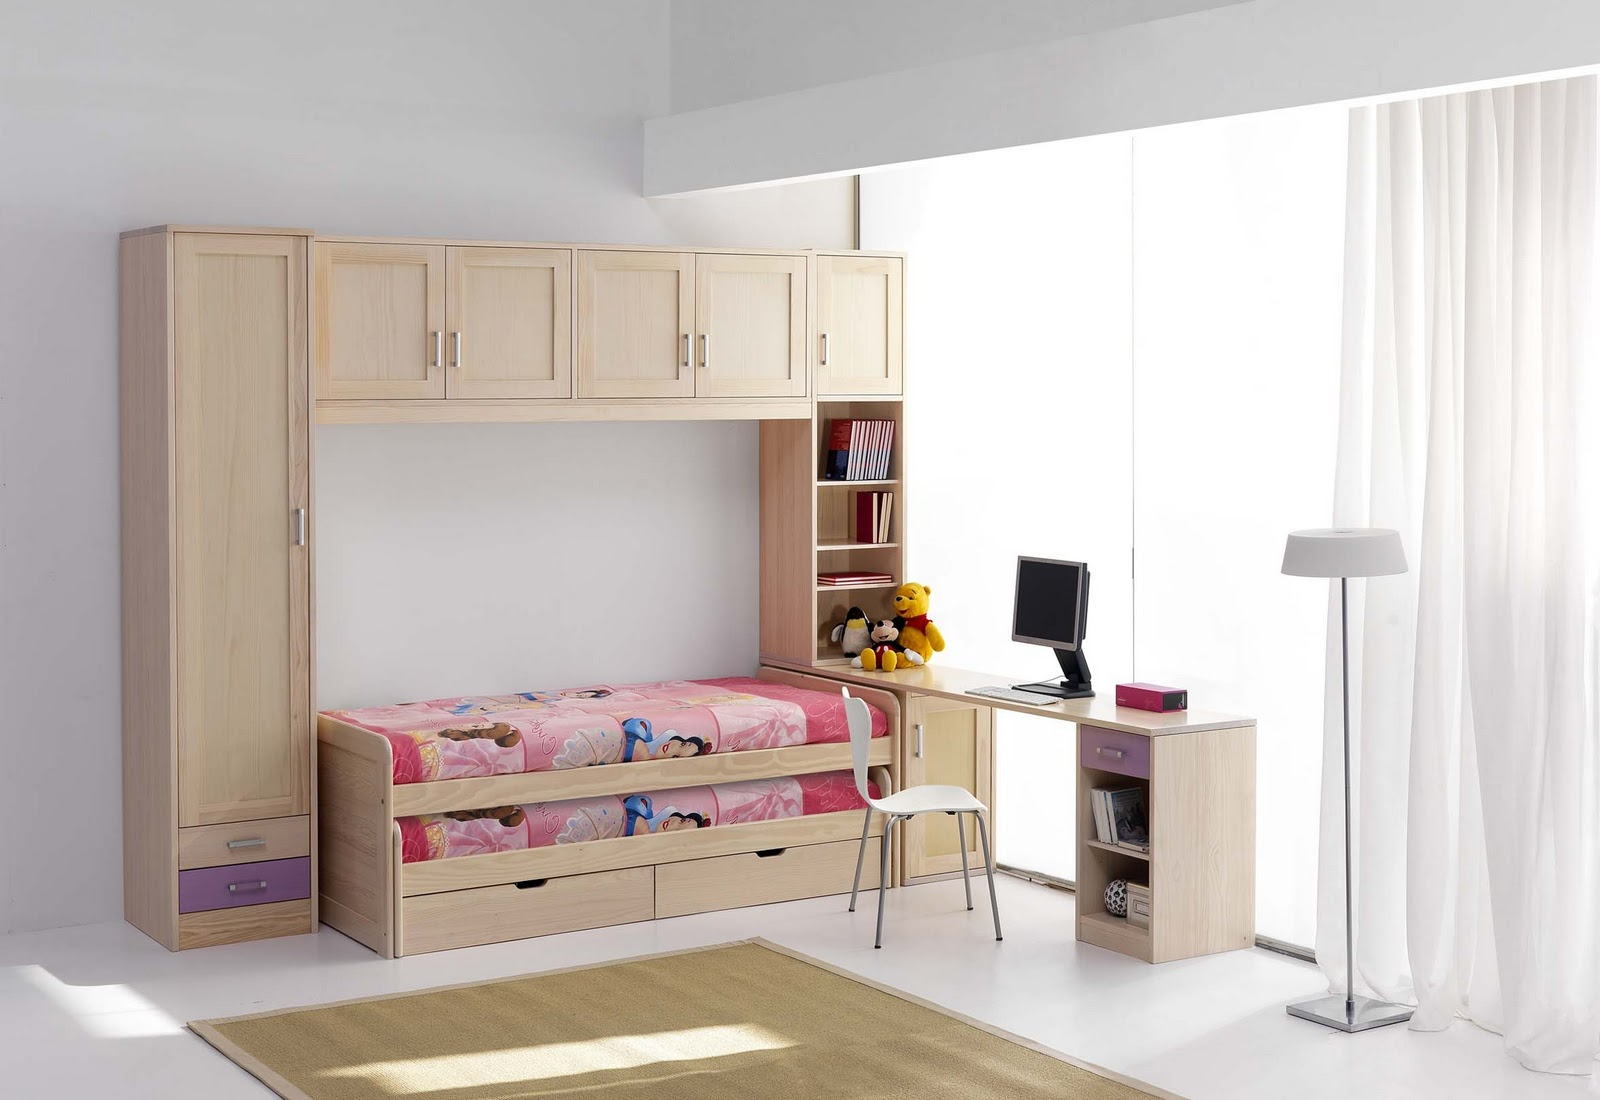 Muebles toscapino Bqdd Muebles toscapino Juveniles